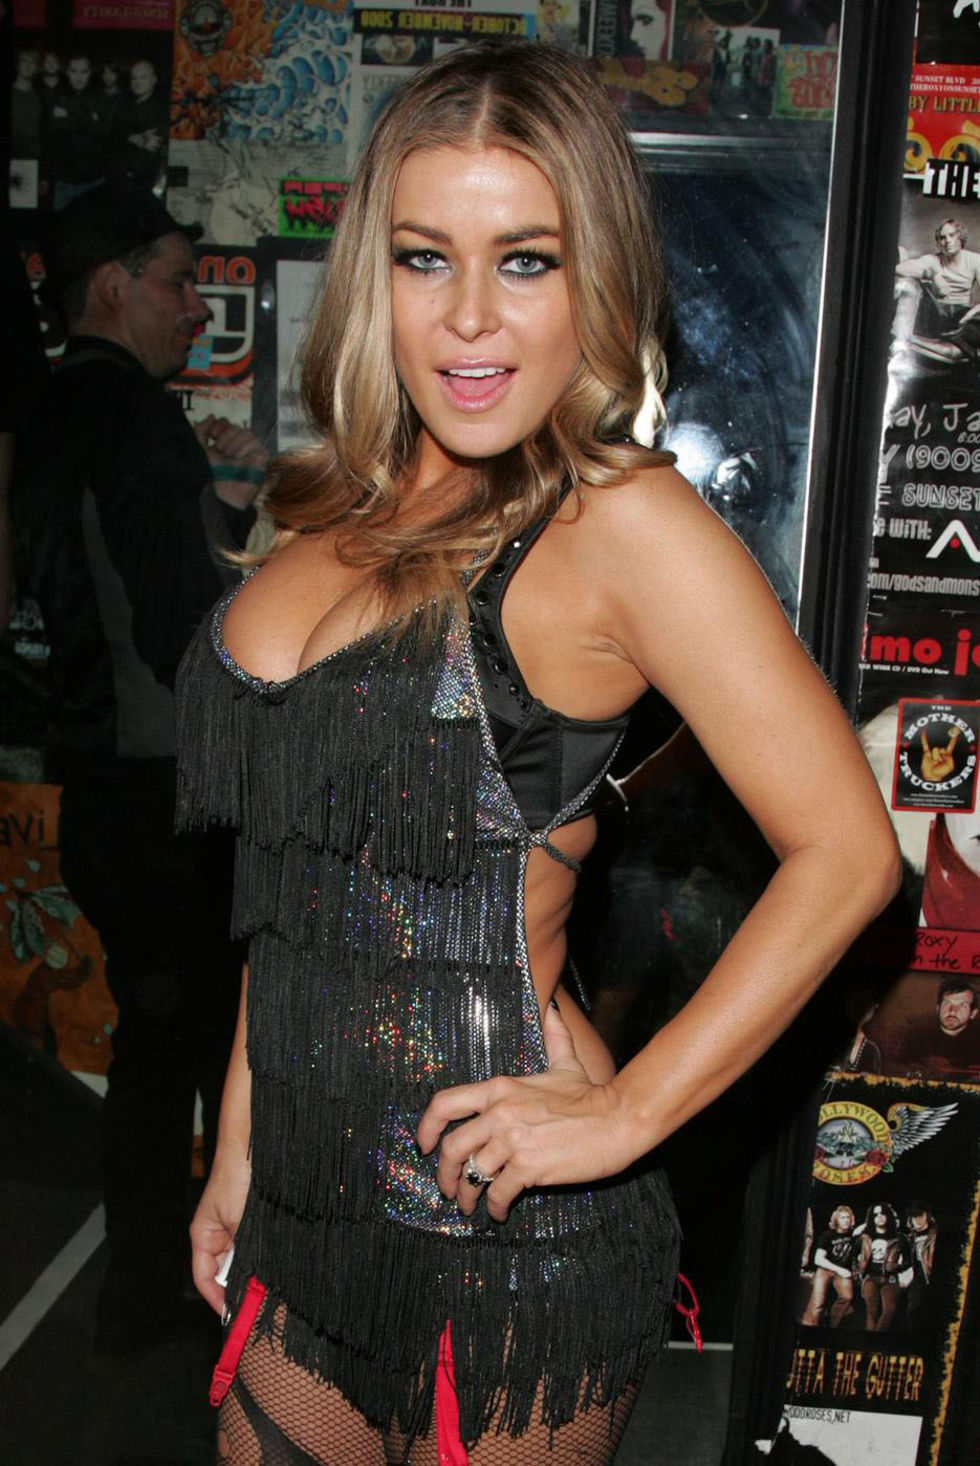 carmen-electra-hosts-the-chelsea-girls-concert-at-the-roxy-01